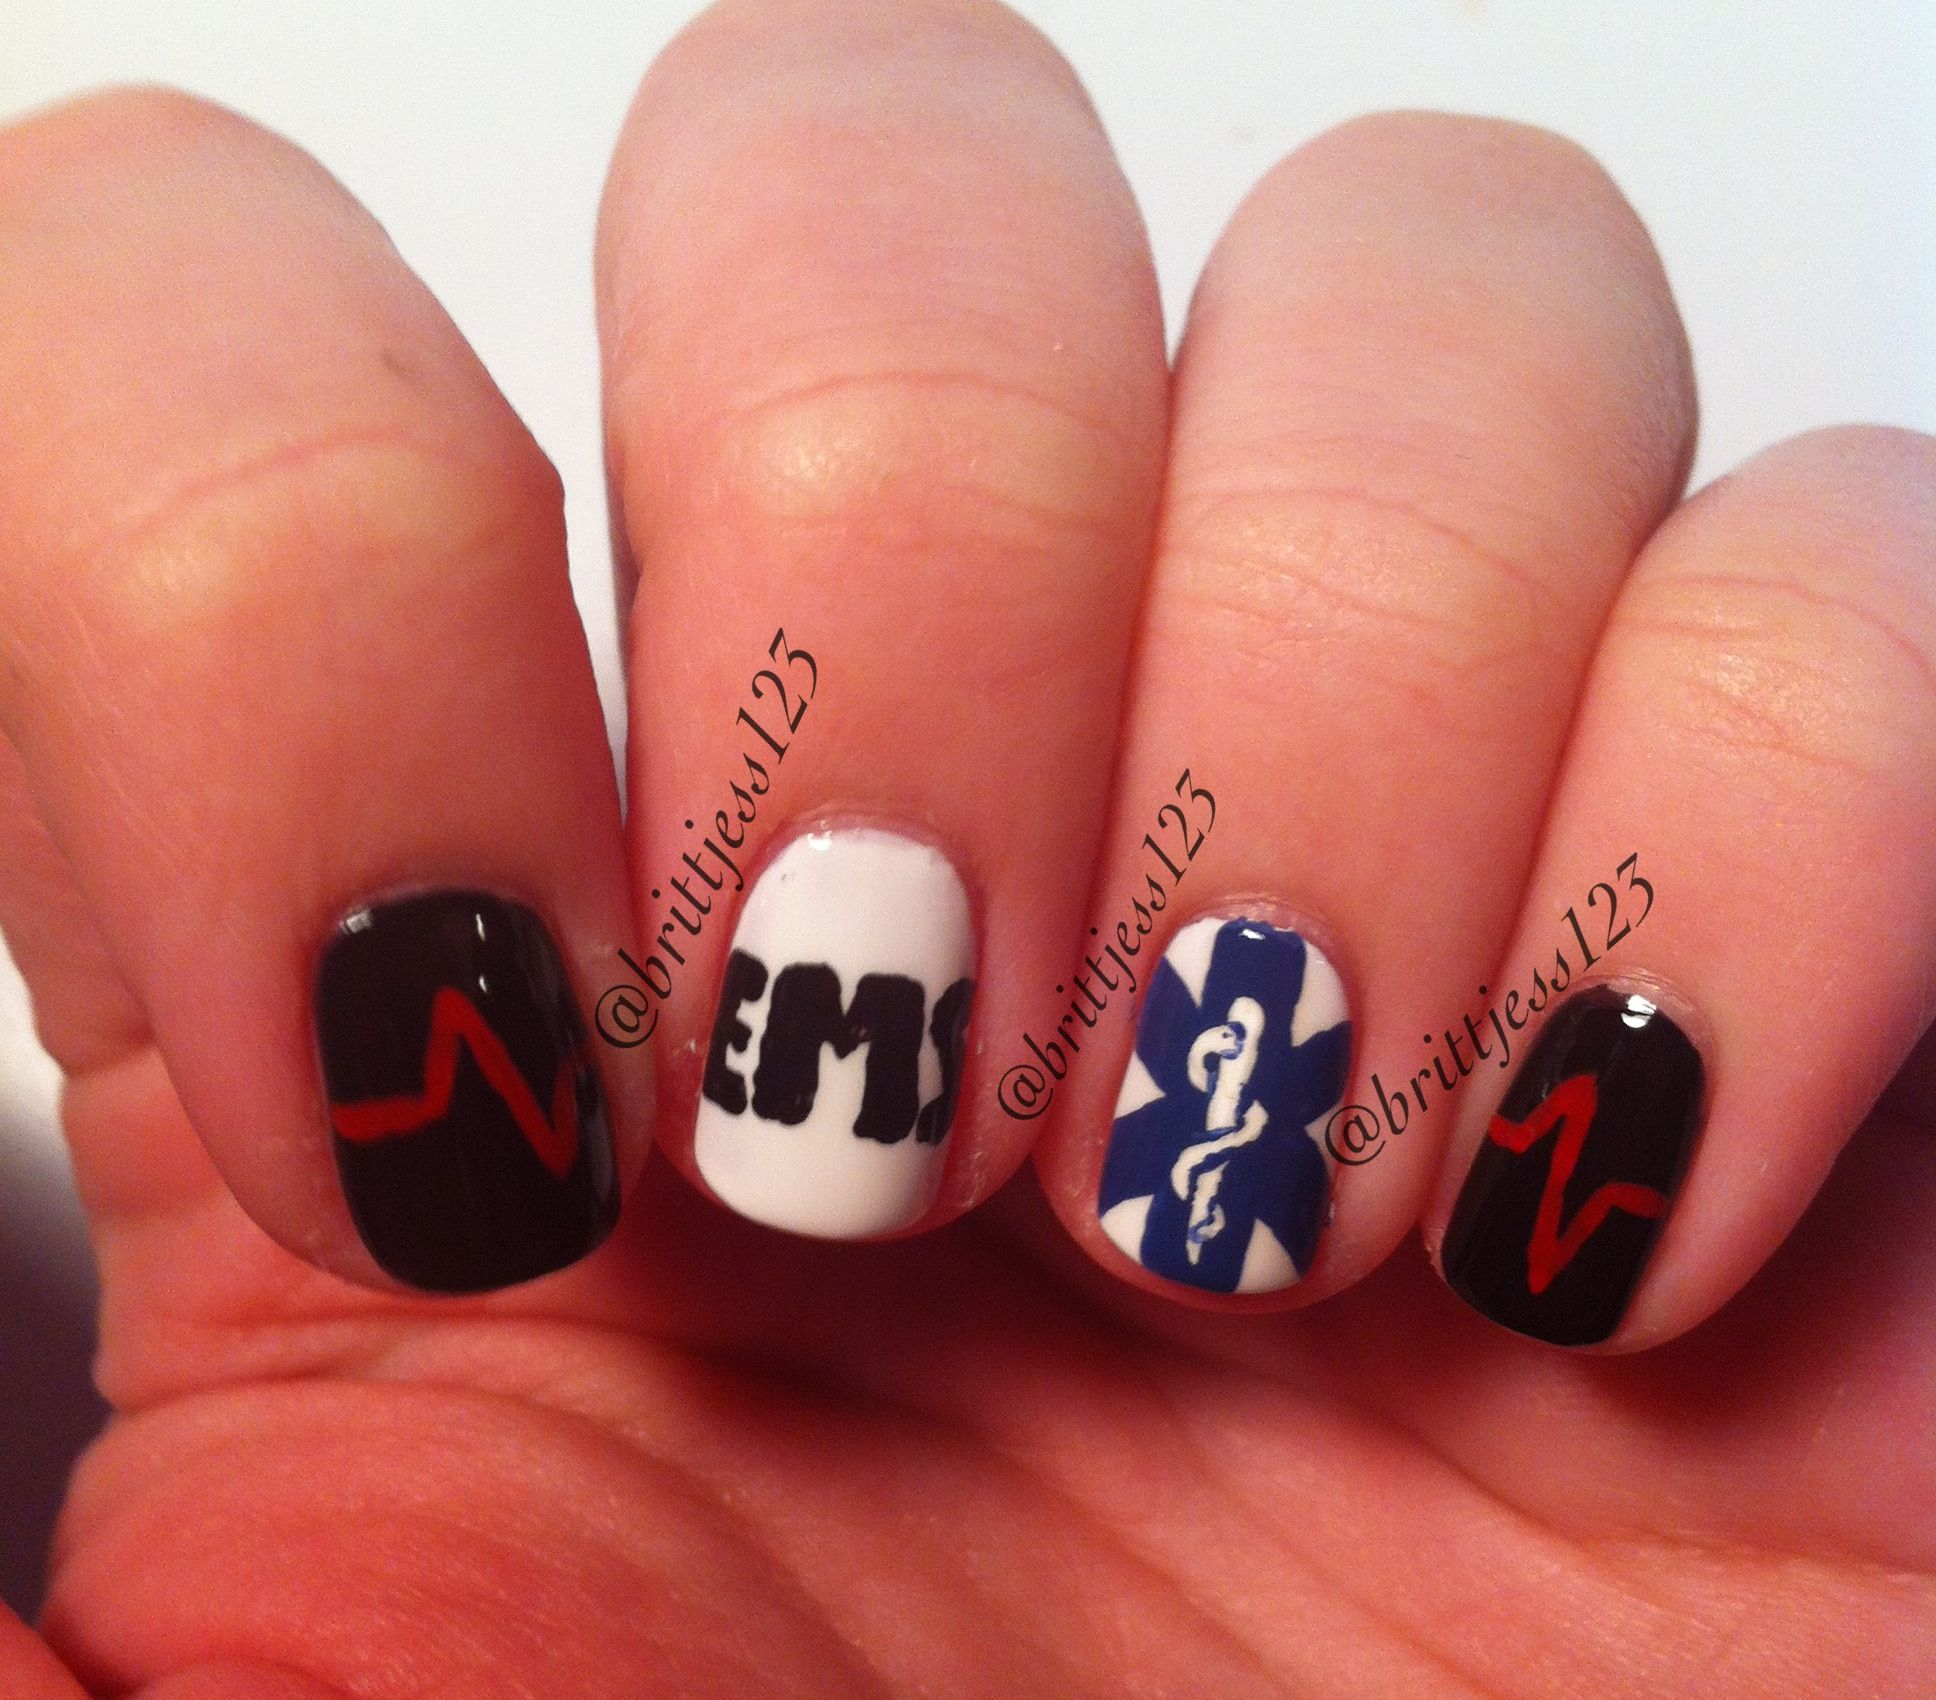 Paramedic nails requested by my friend! | emt shit | Pinterest ...